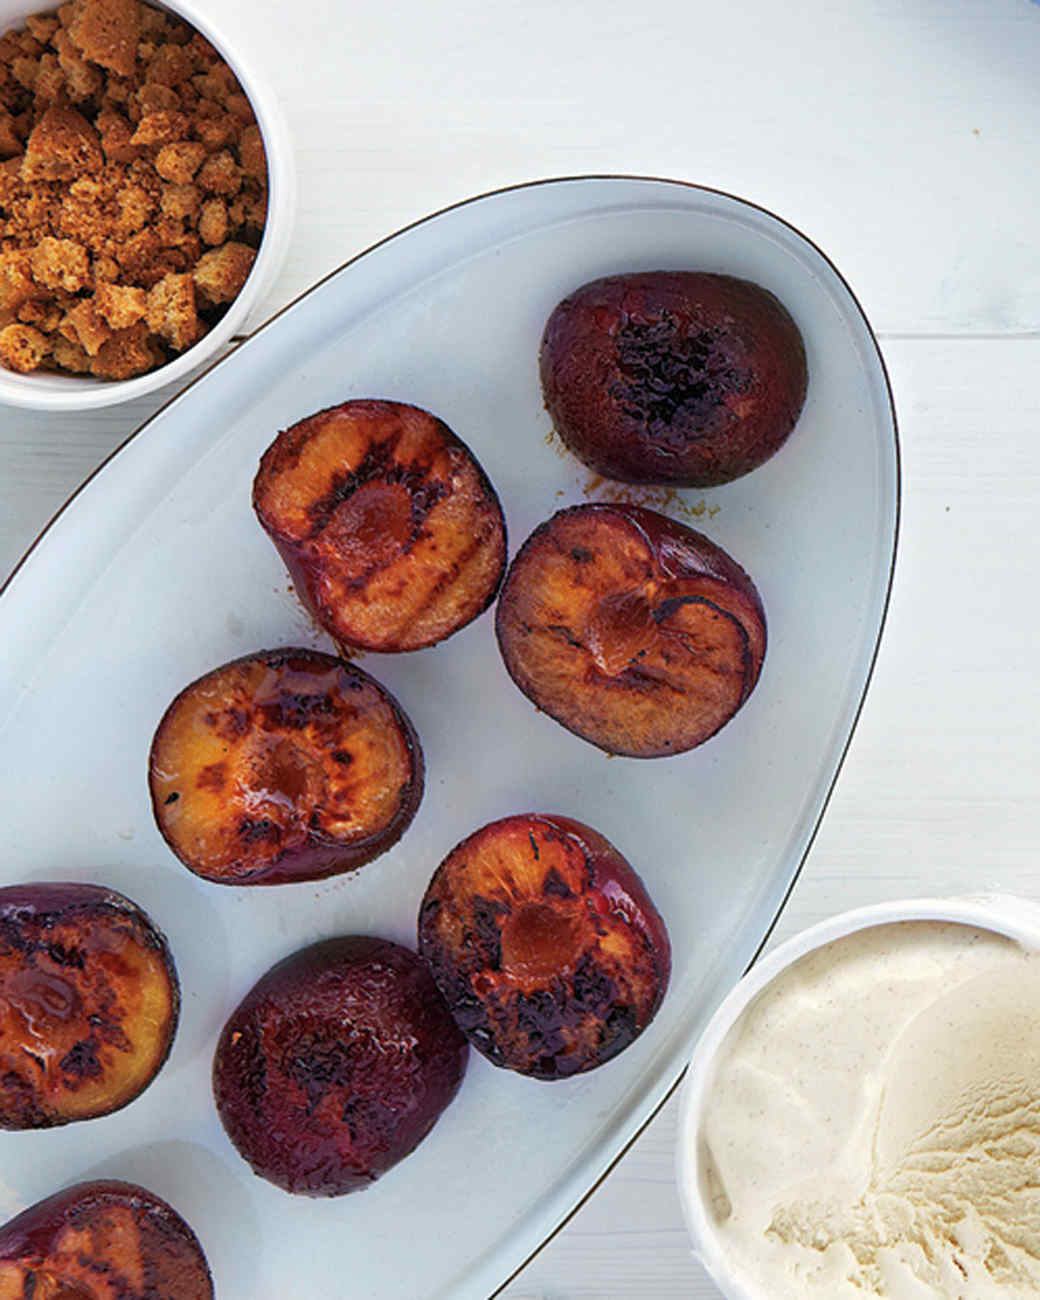 Grilled Plums with Cookies and Ice Cream